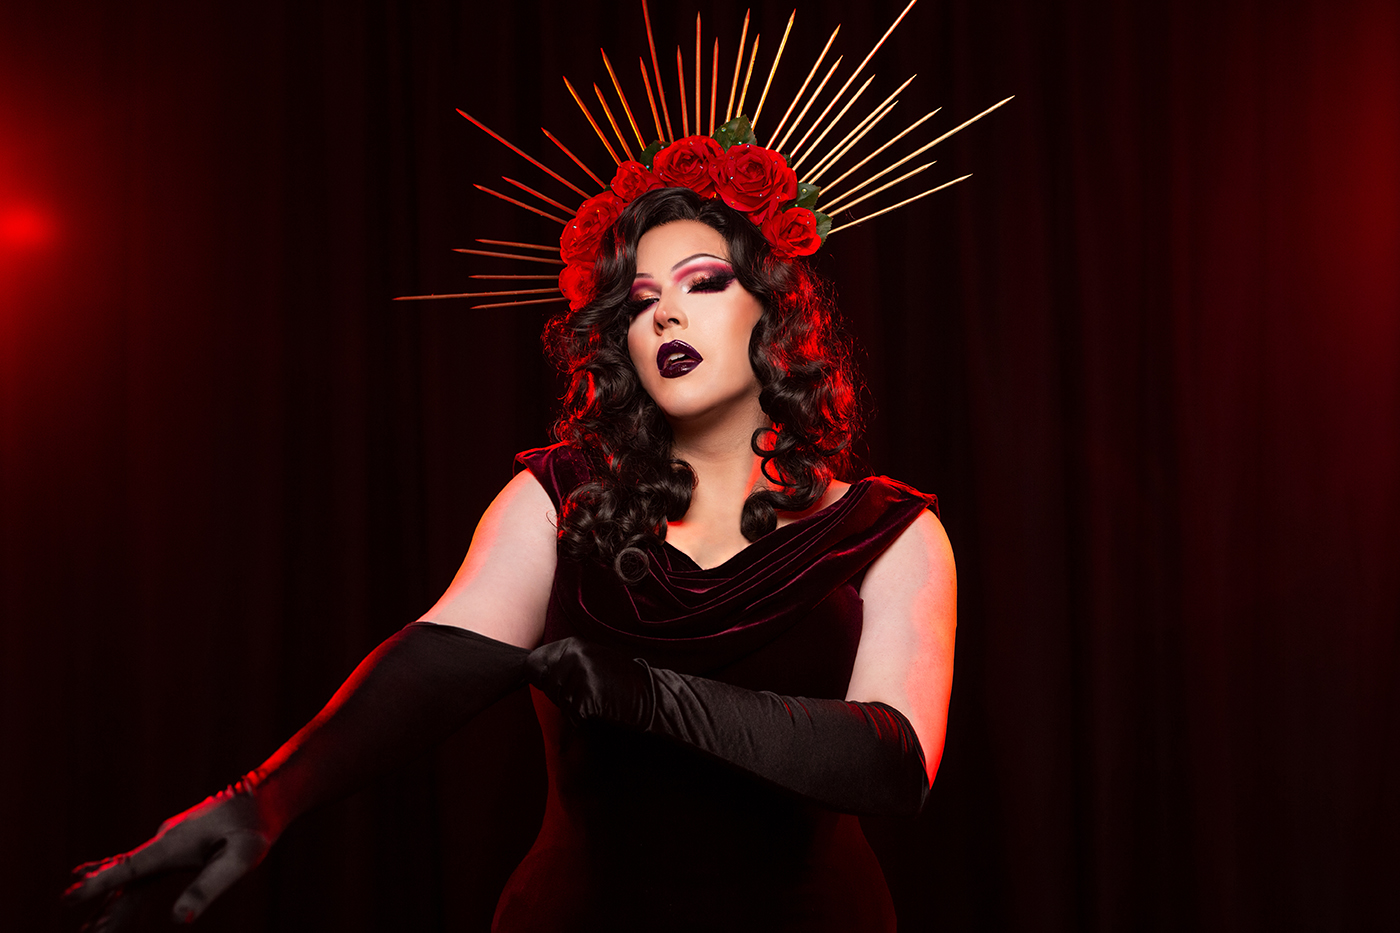 Known onstage as the performer Electra Jones, Jordan Ruggeri explores themes of gender and identity through the art of transformation.